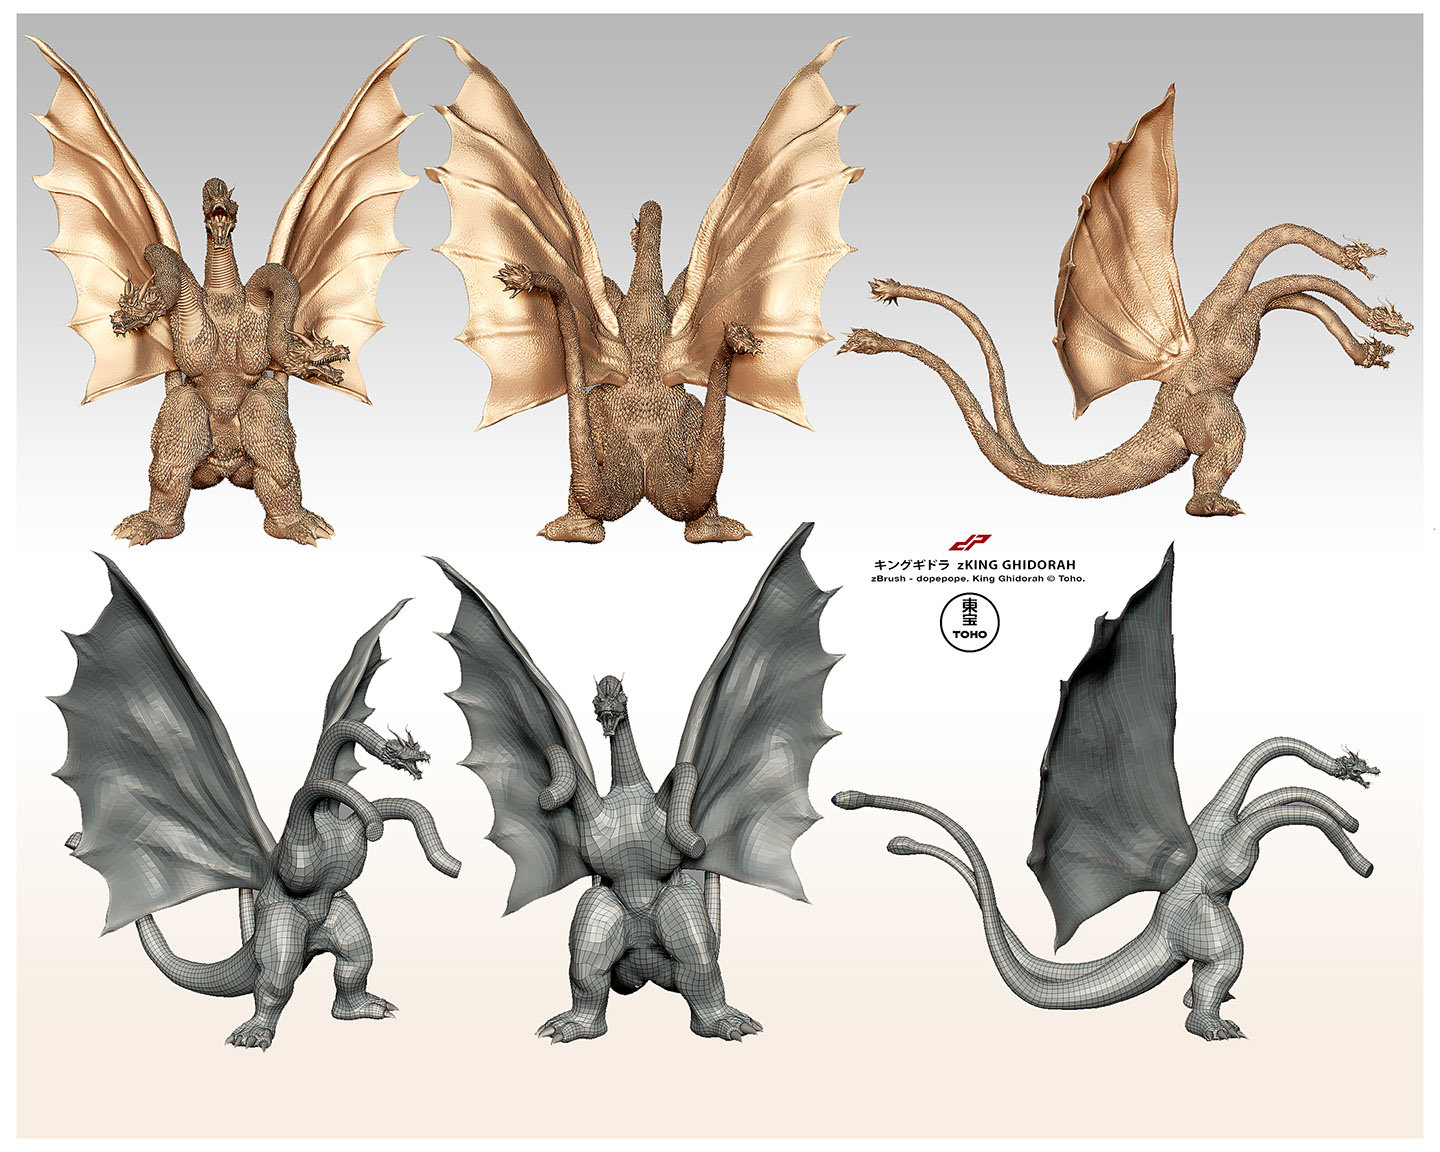 Dope pope zking ghidorah alternate views by dopepope d7eu2ih